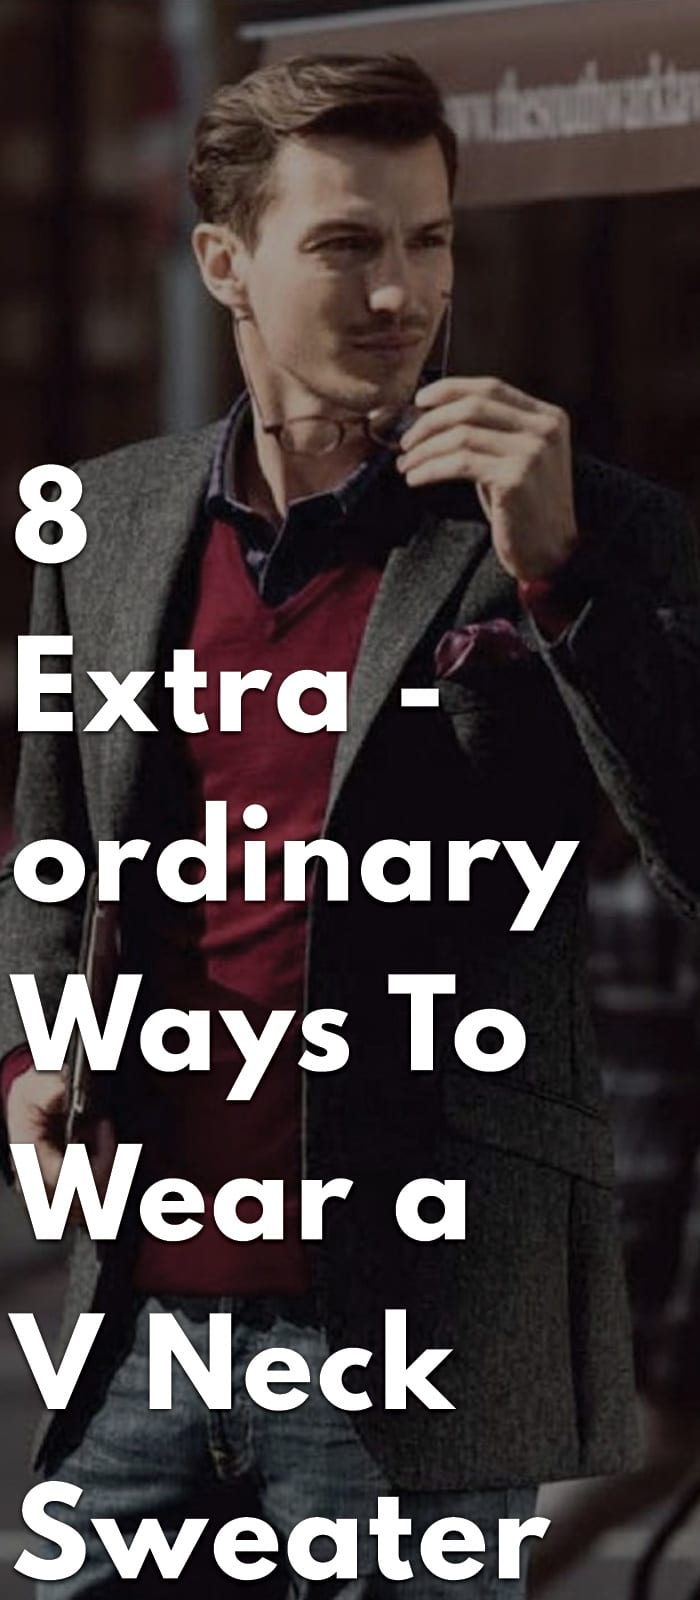 8-Extraordinary-Ways-to-Wear-a-V-Neck-Sweater